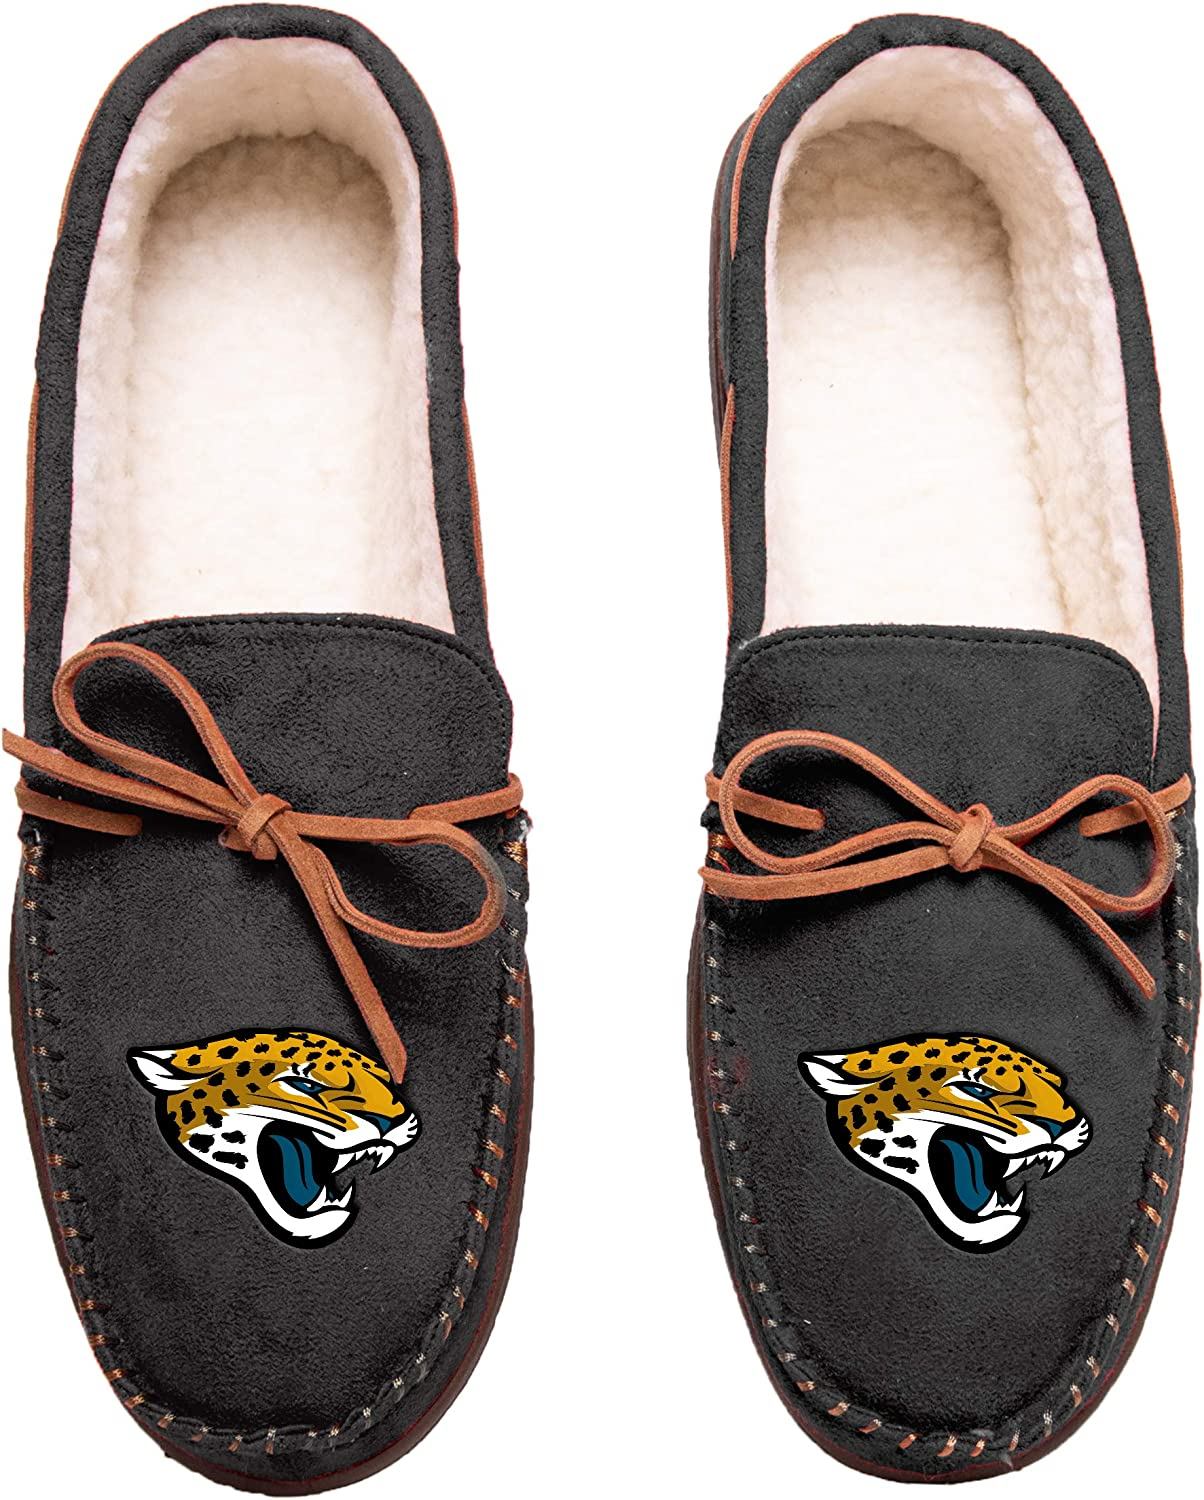 FOCO Football Mens Team color Big Logo Moccasin Slippers shoes - Pick Team